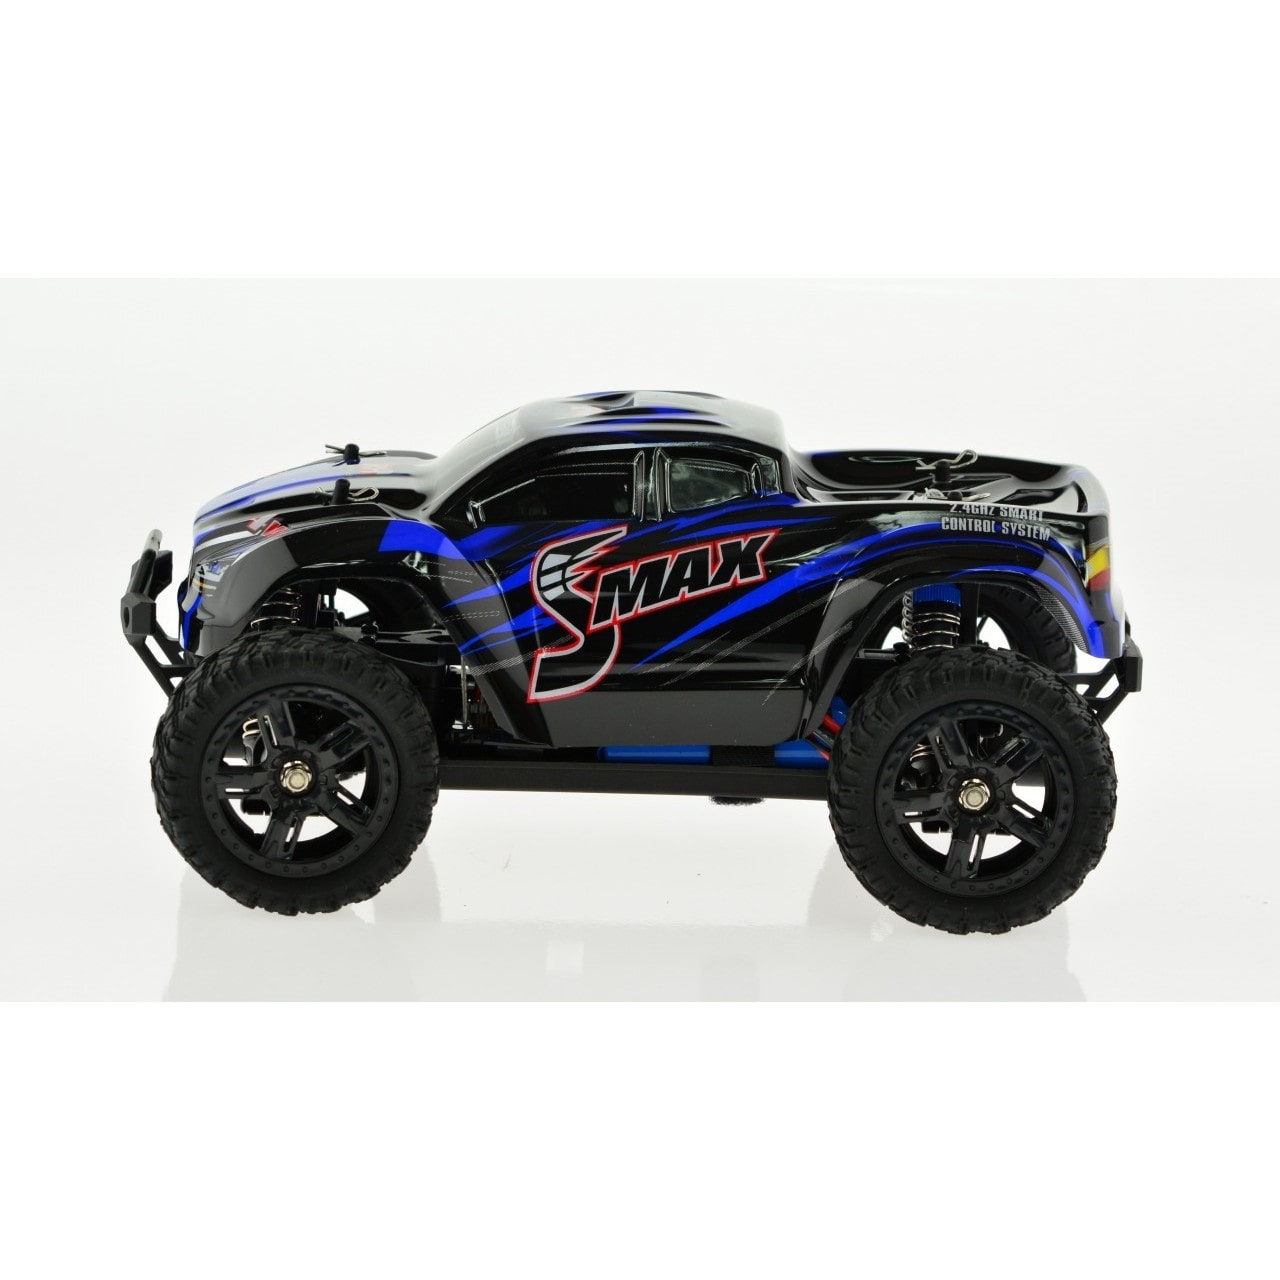 MH RC 1/16 Scale Electric 4-Wheel Drive 2.4G Off-road Bru...